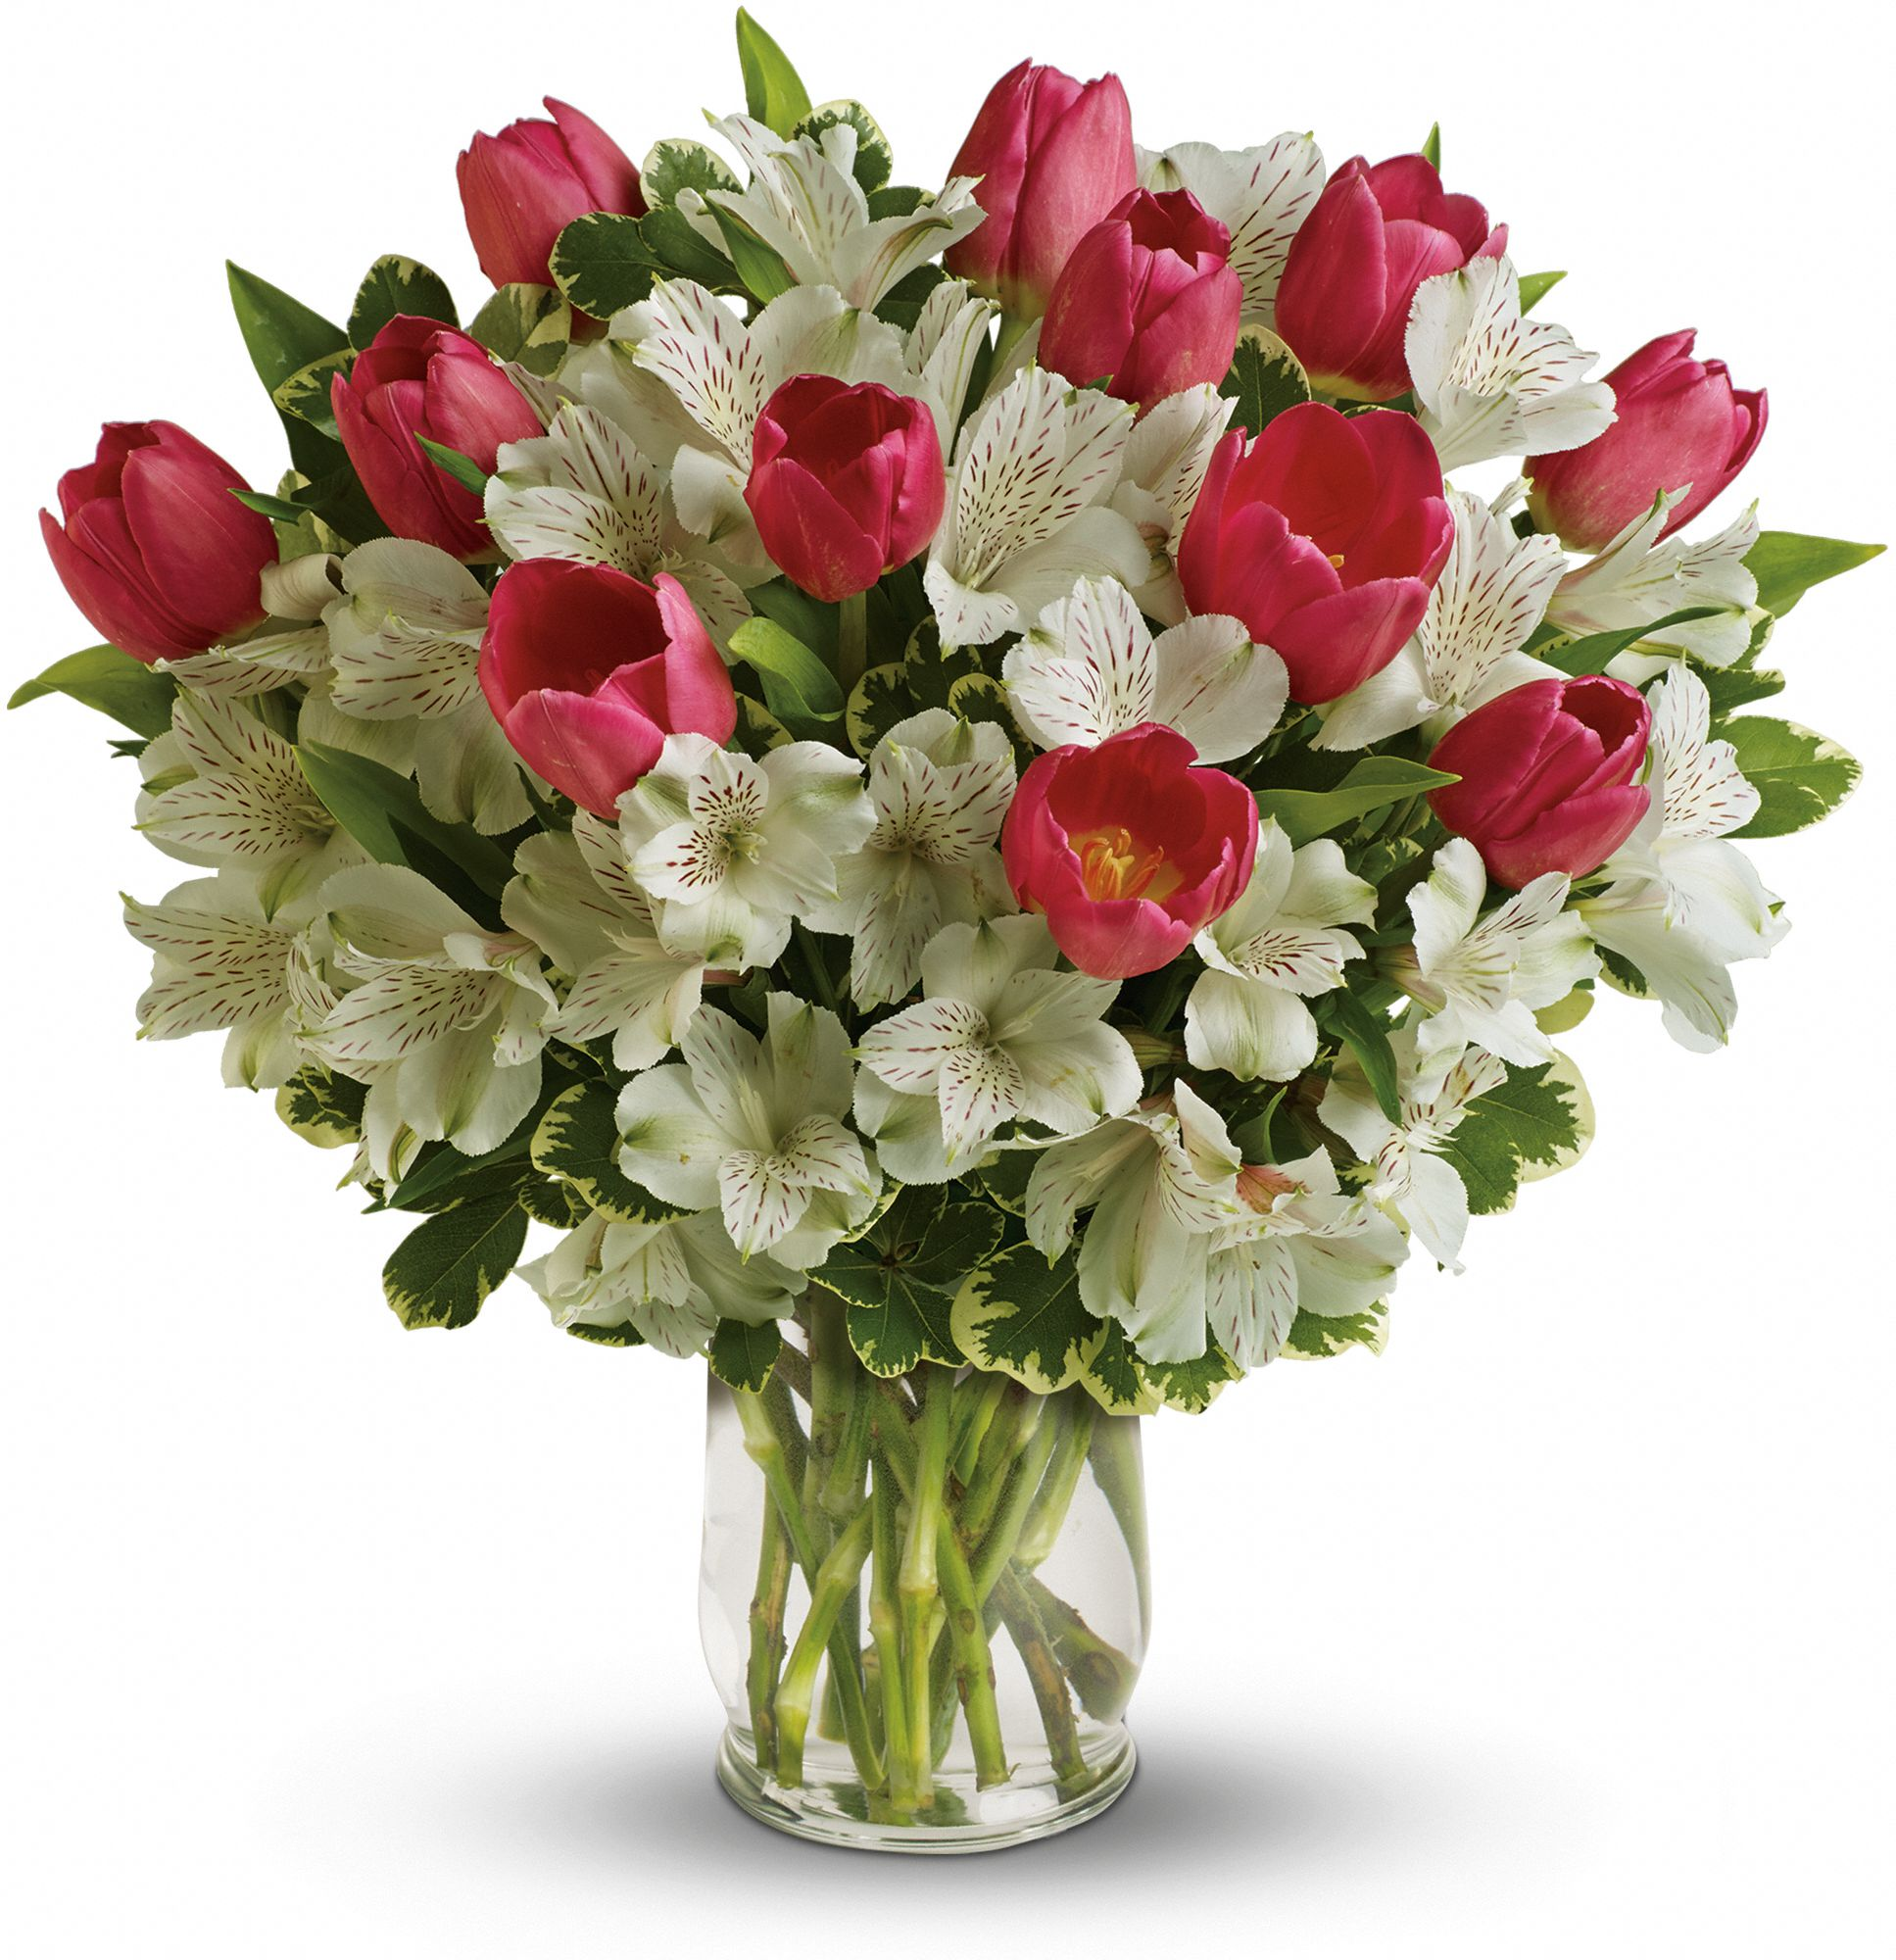 Spring romance bouquet of tulips and peruvian lilies